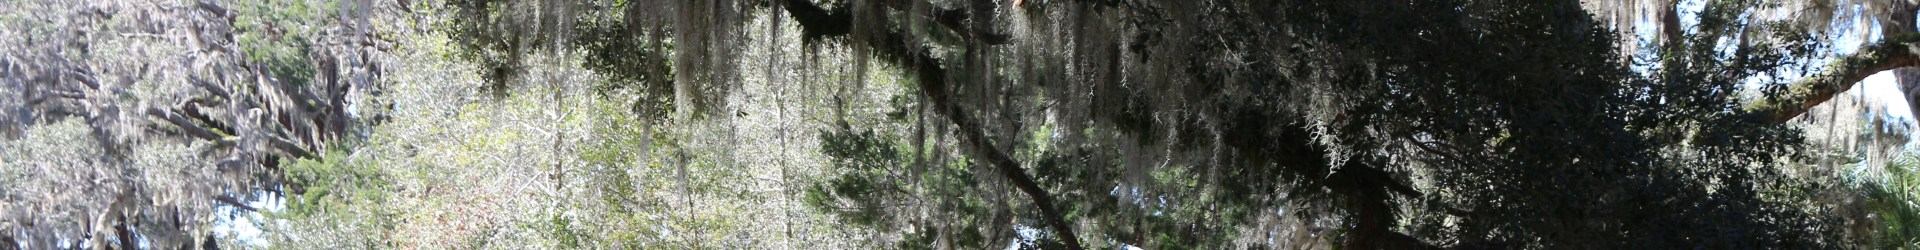 Lands and Legacies of Cumberland Island National Seashore